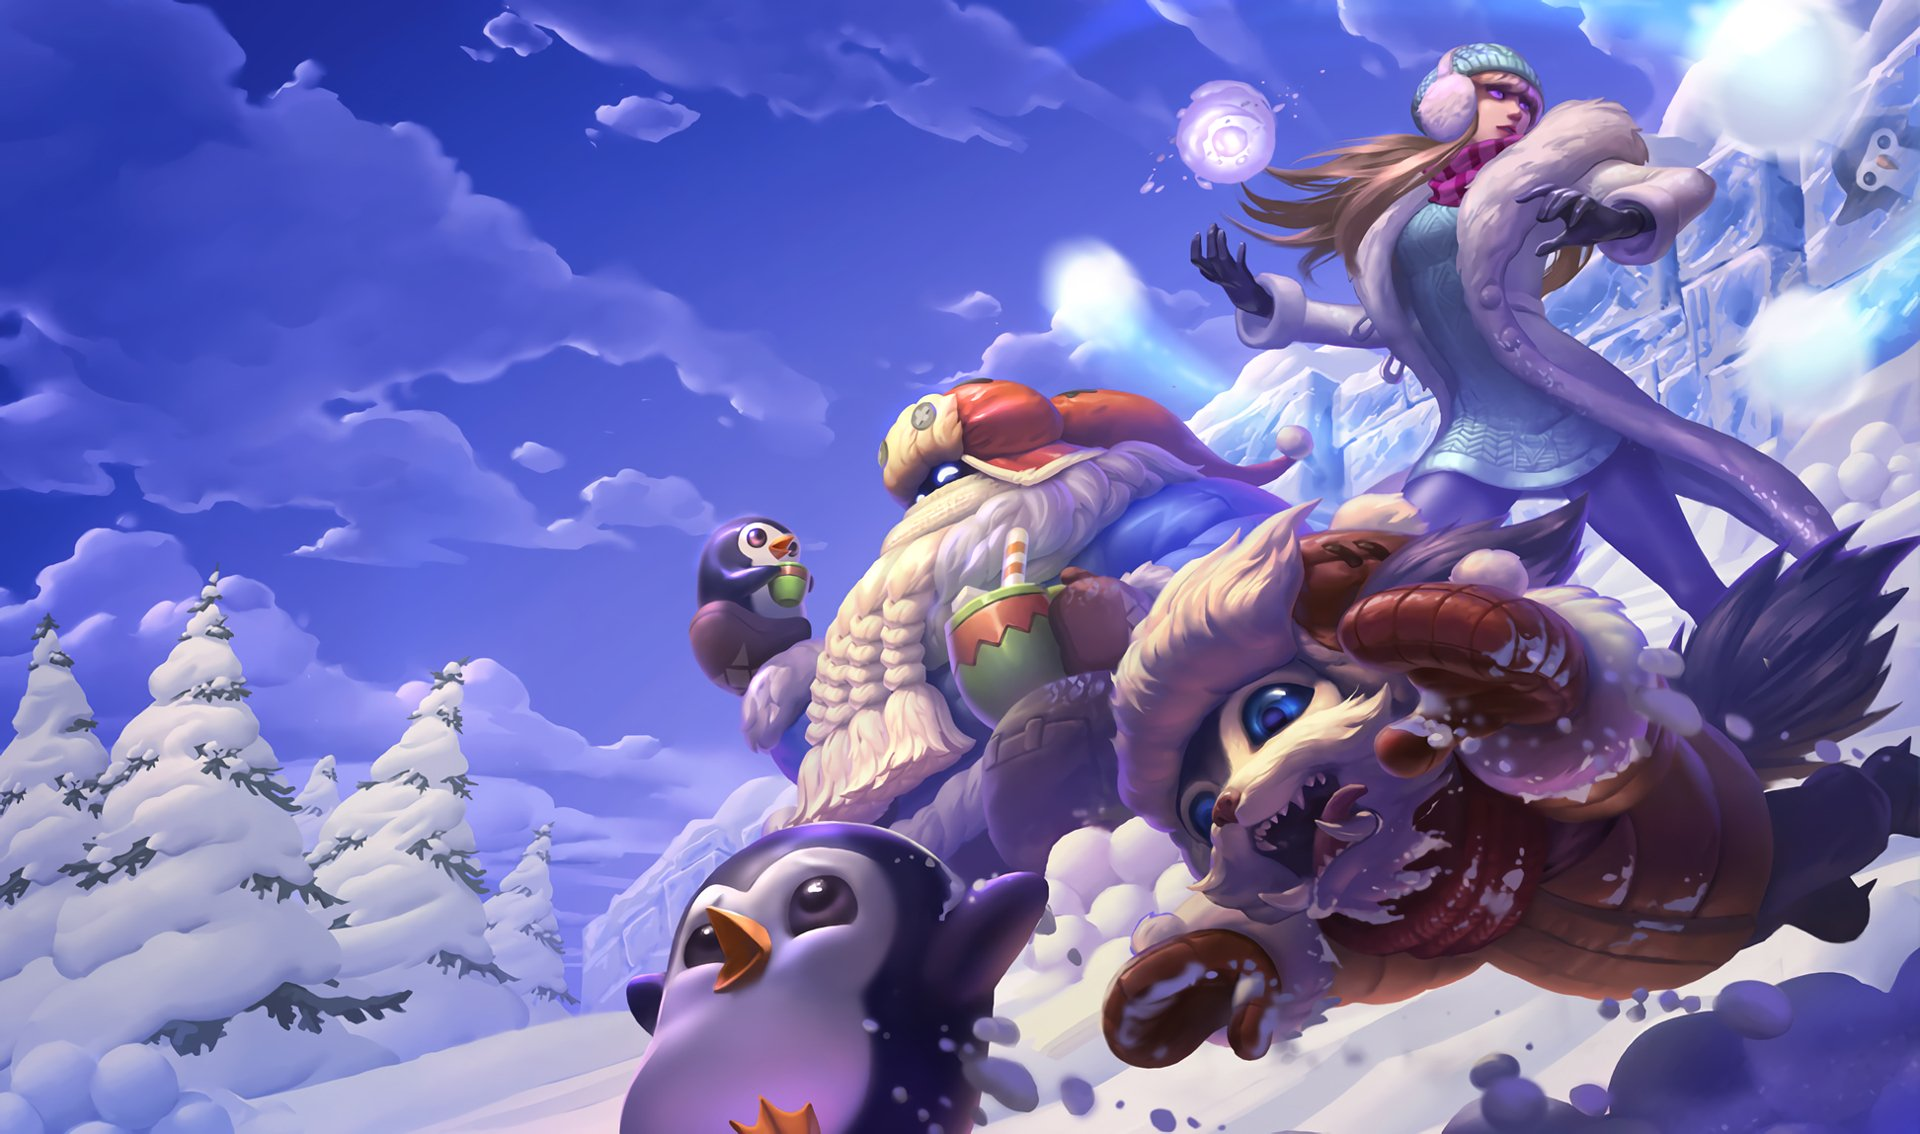 10 Bard League Of Legends Hd Wallpapers Background Images